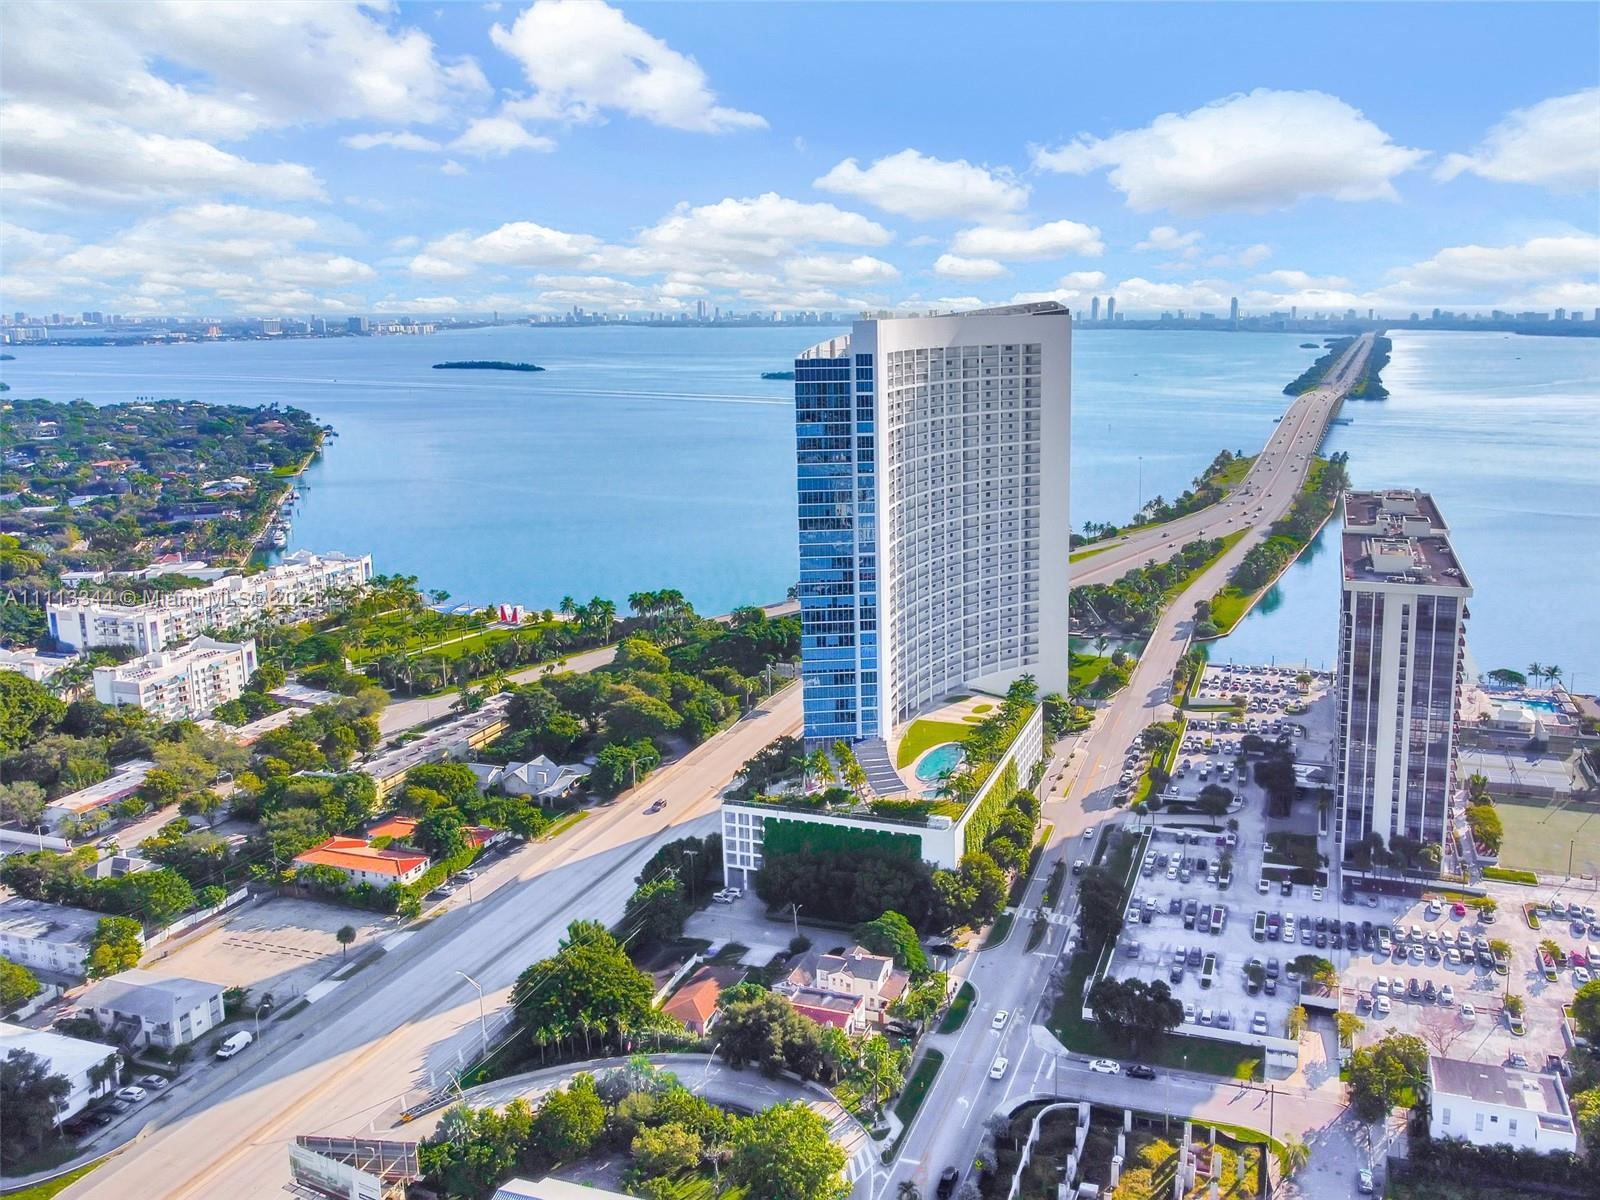 One of a kind home in the Sky! Enjoy breathtaking Views of the Bay, Miami Beach & The city from the